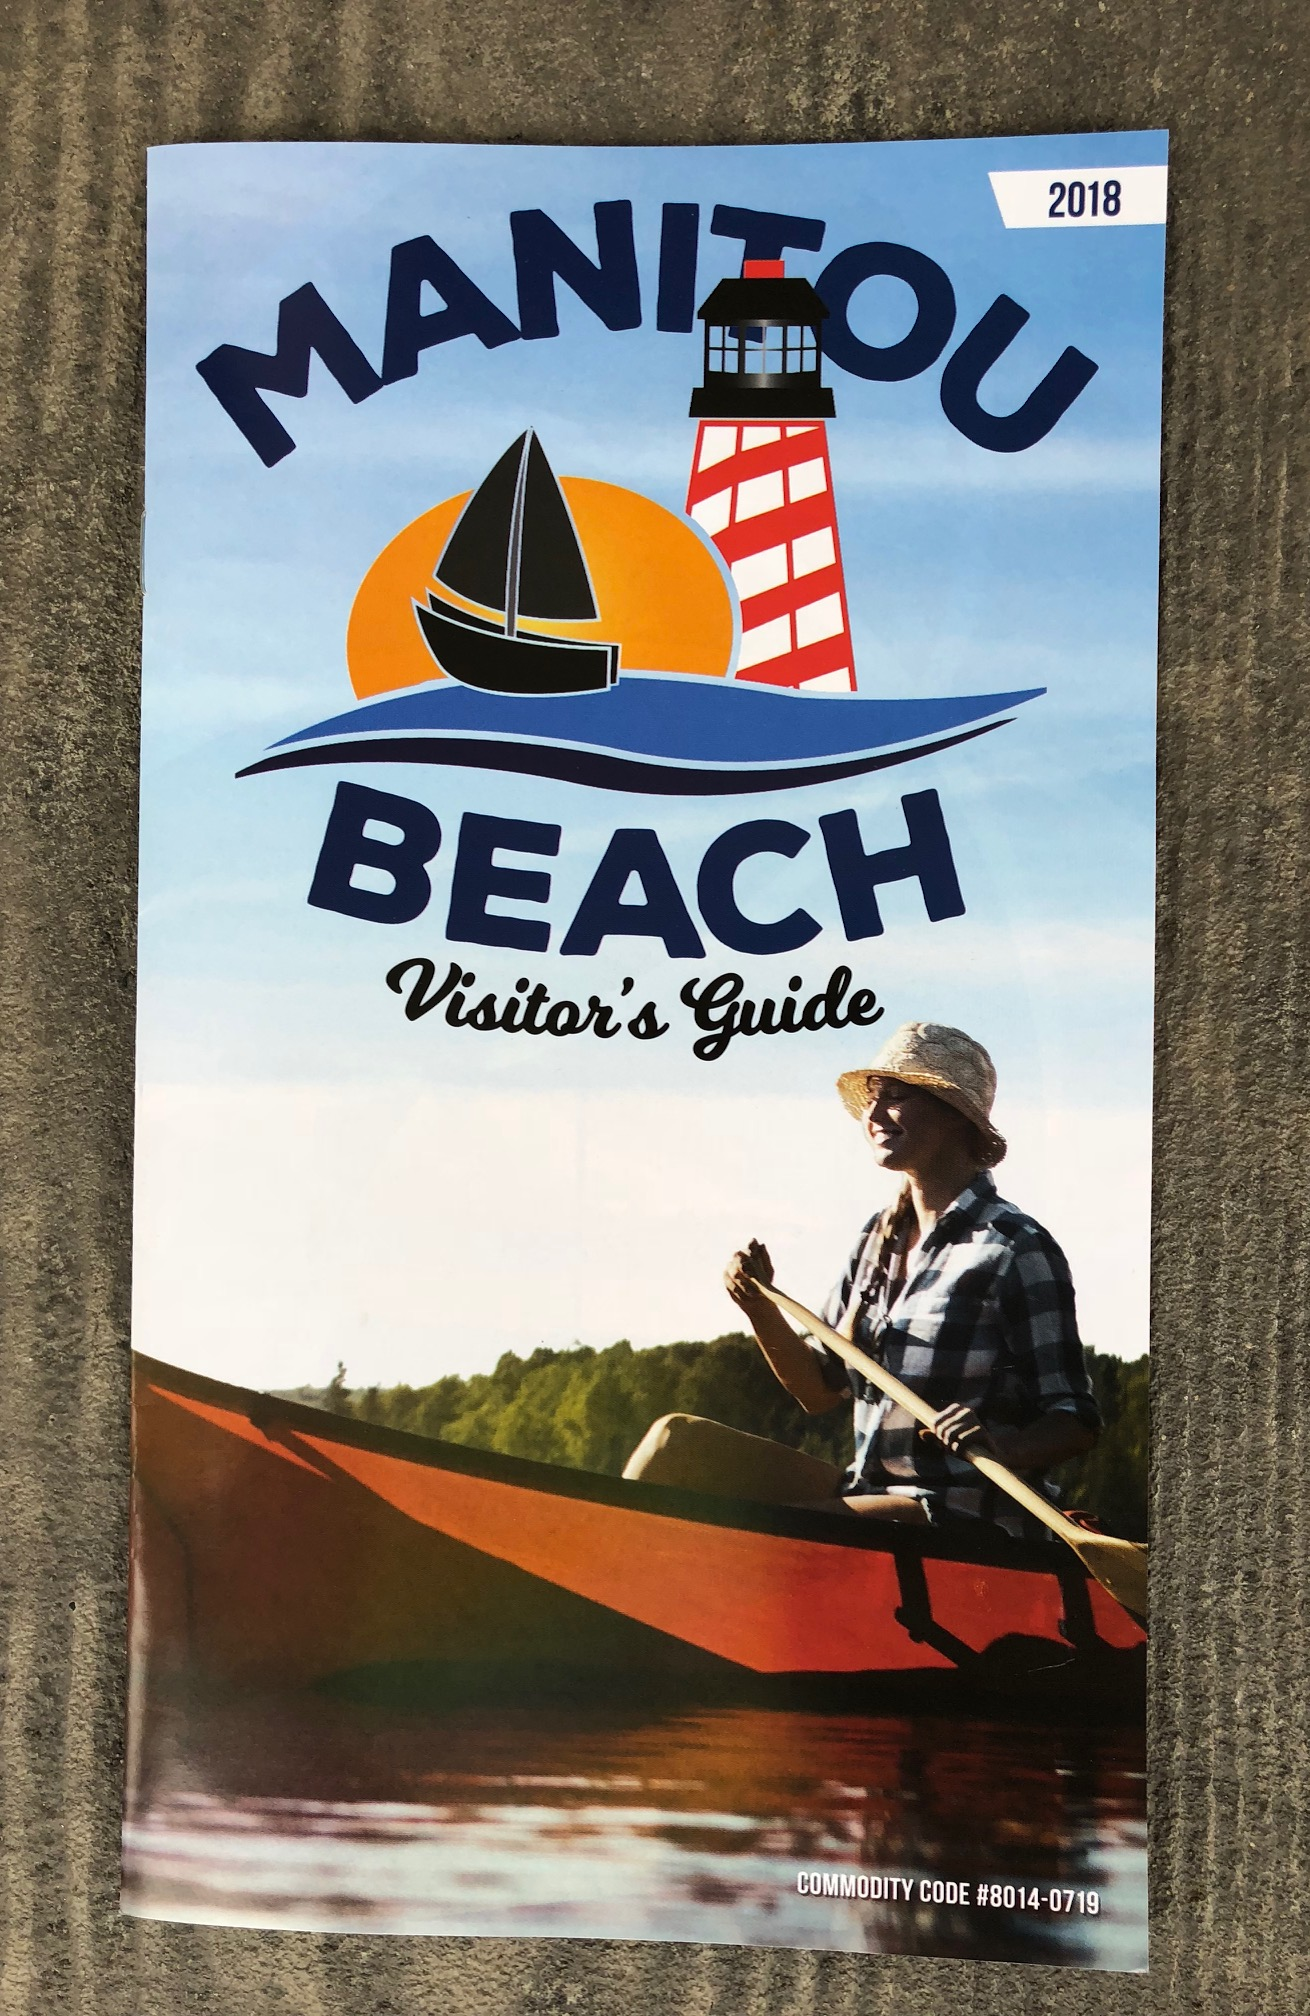 manitou-beach-visitors-guide1